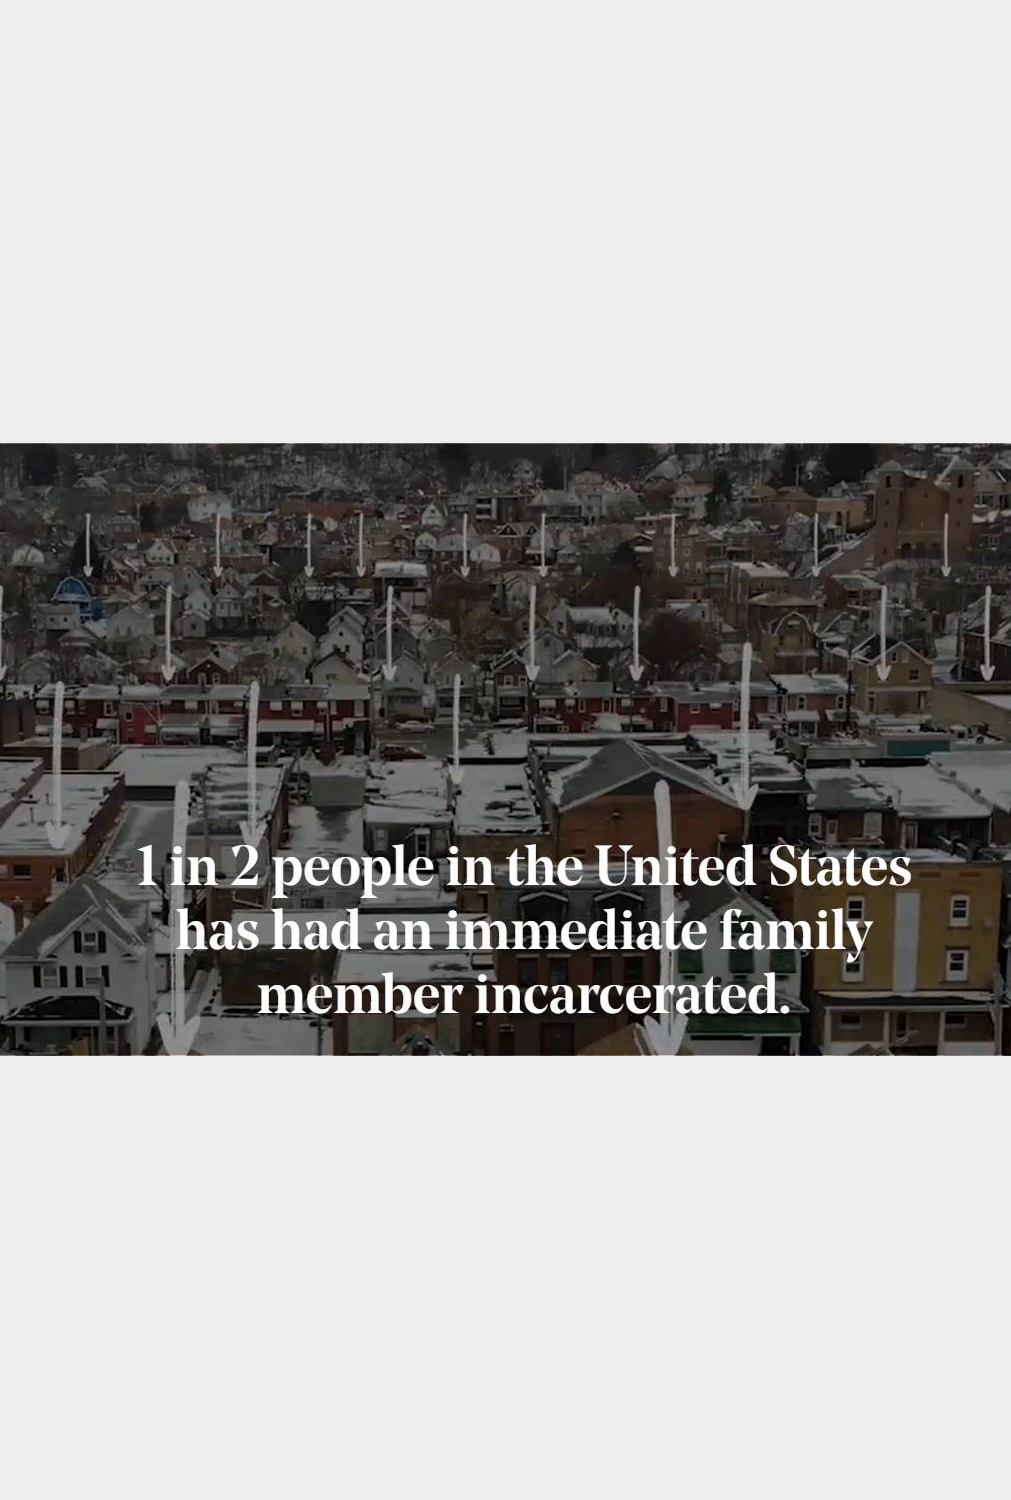 1 in 2 had immediate family incarcerated